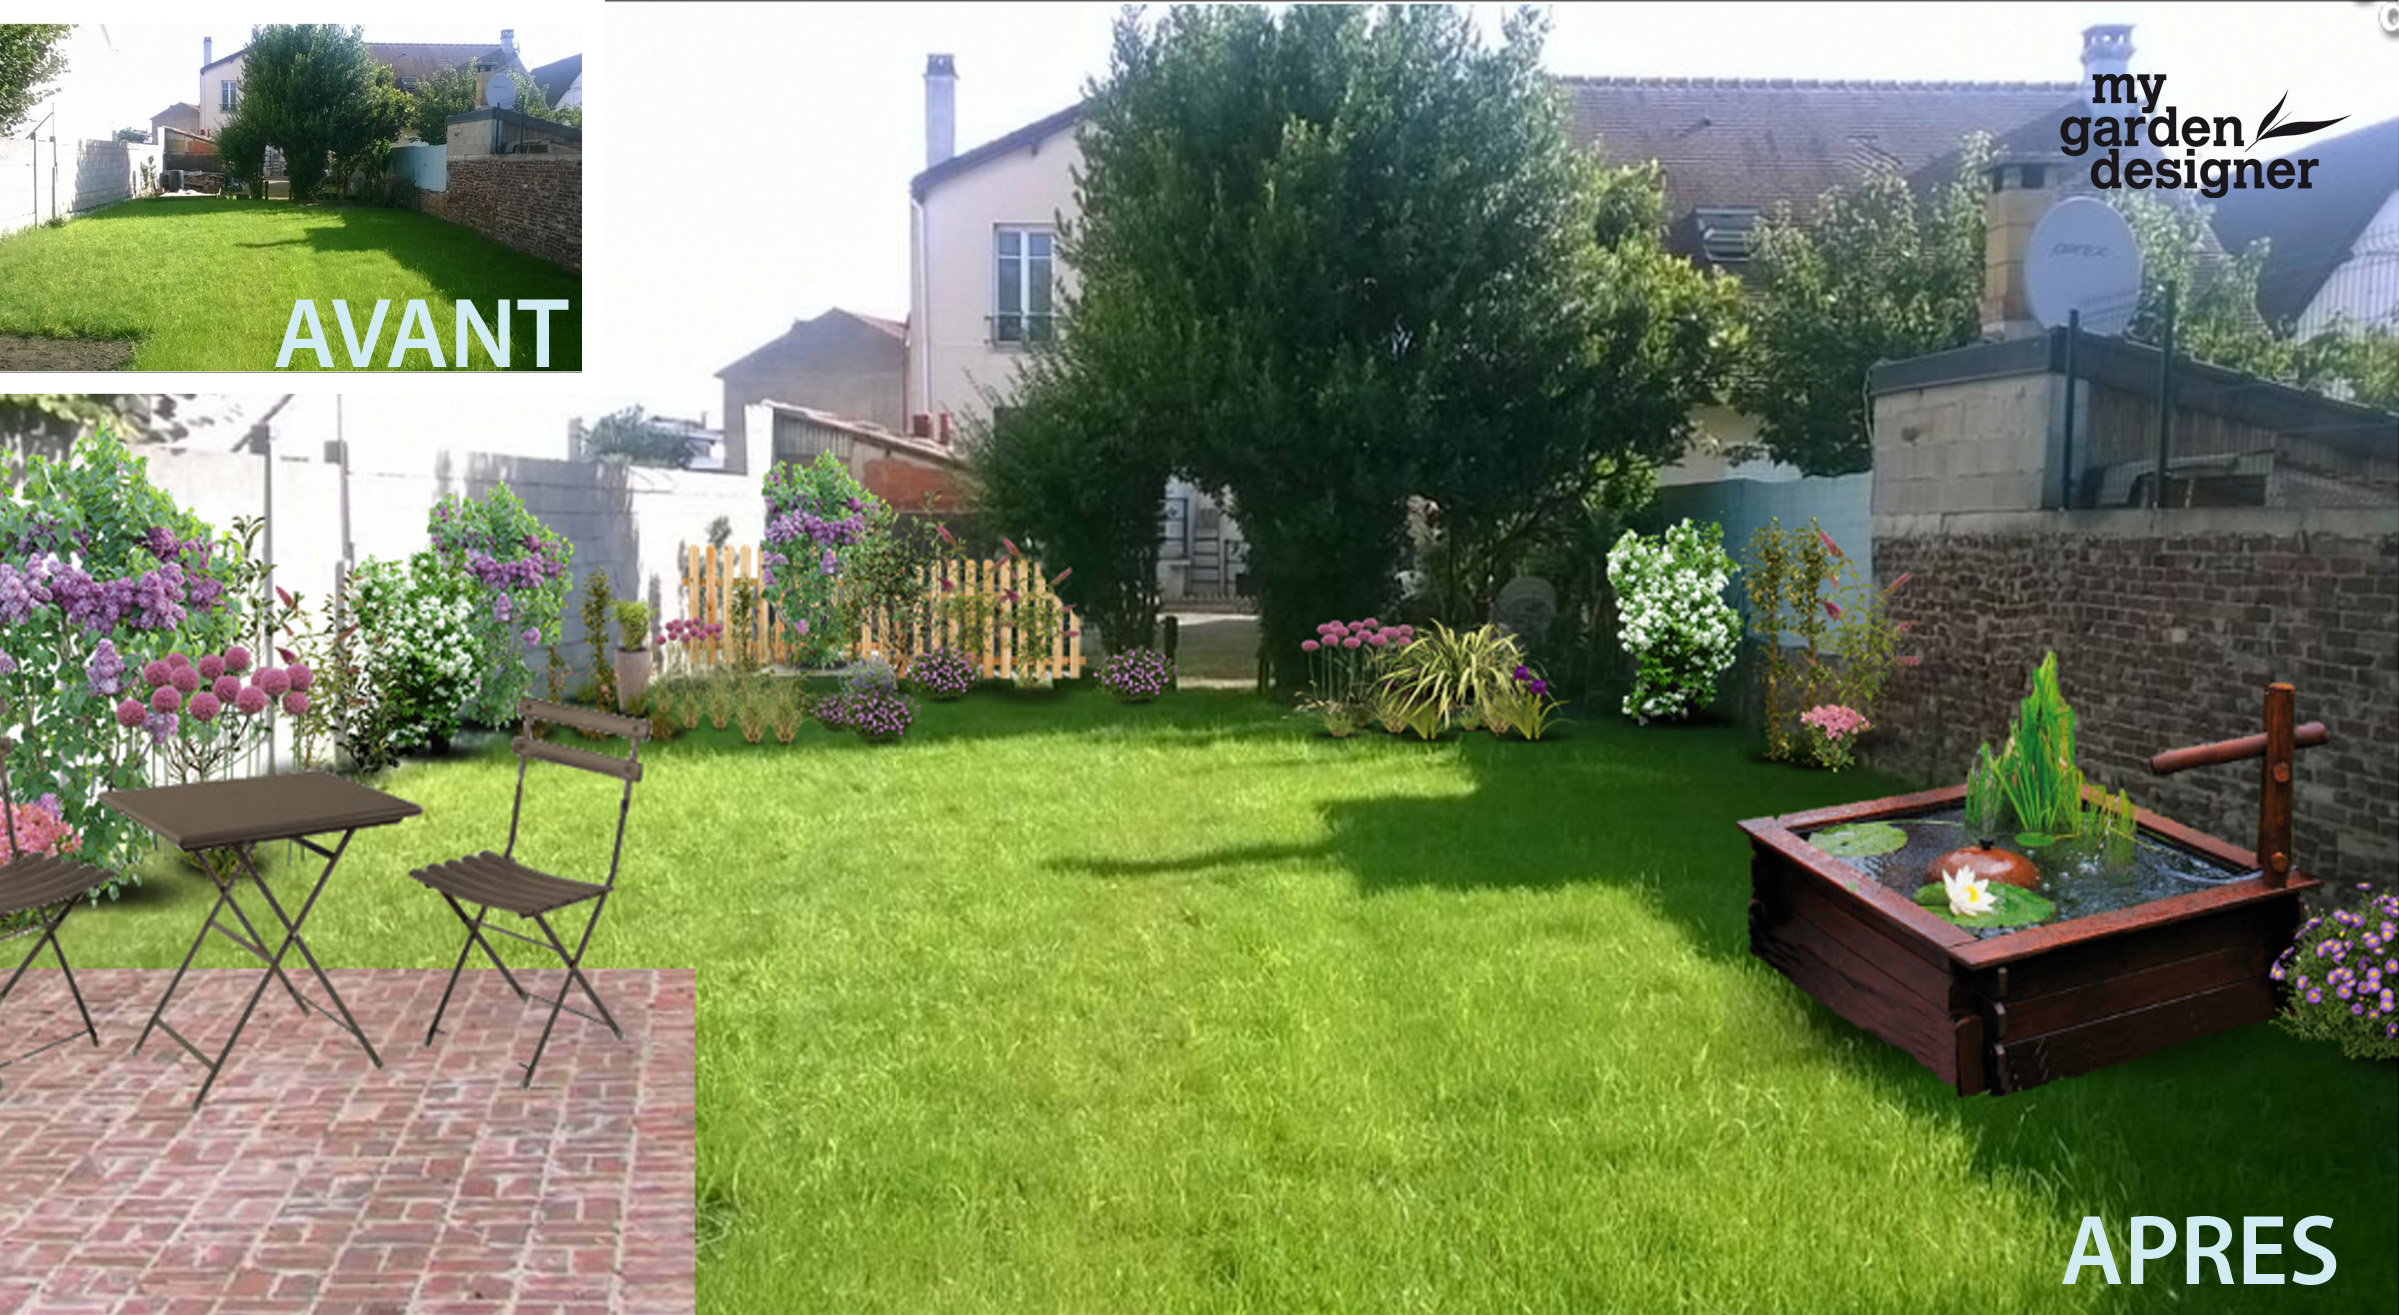 Am nager un jardin carr en ile de france monjardin for Amenager le jardin